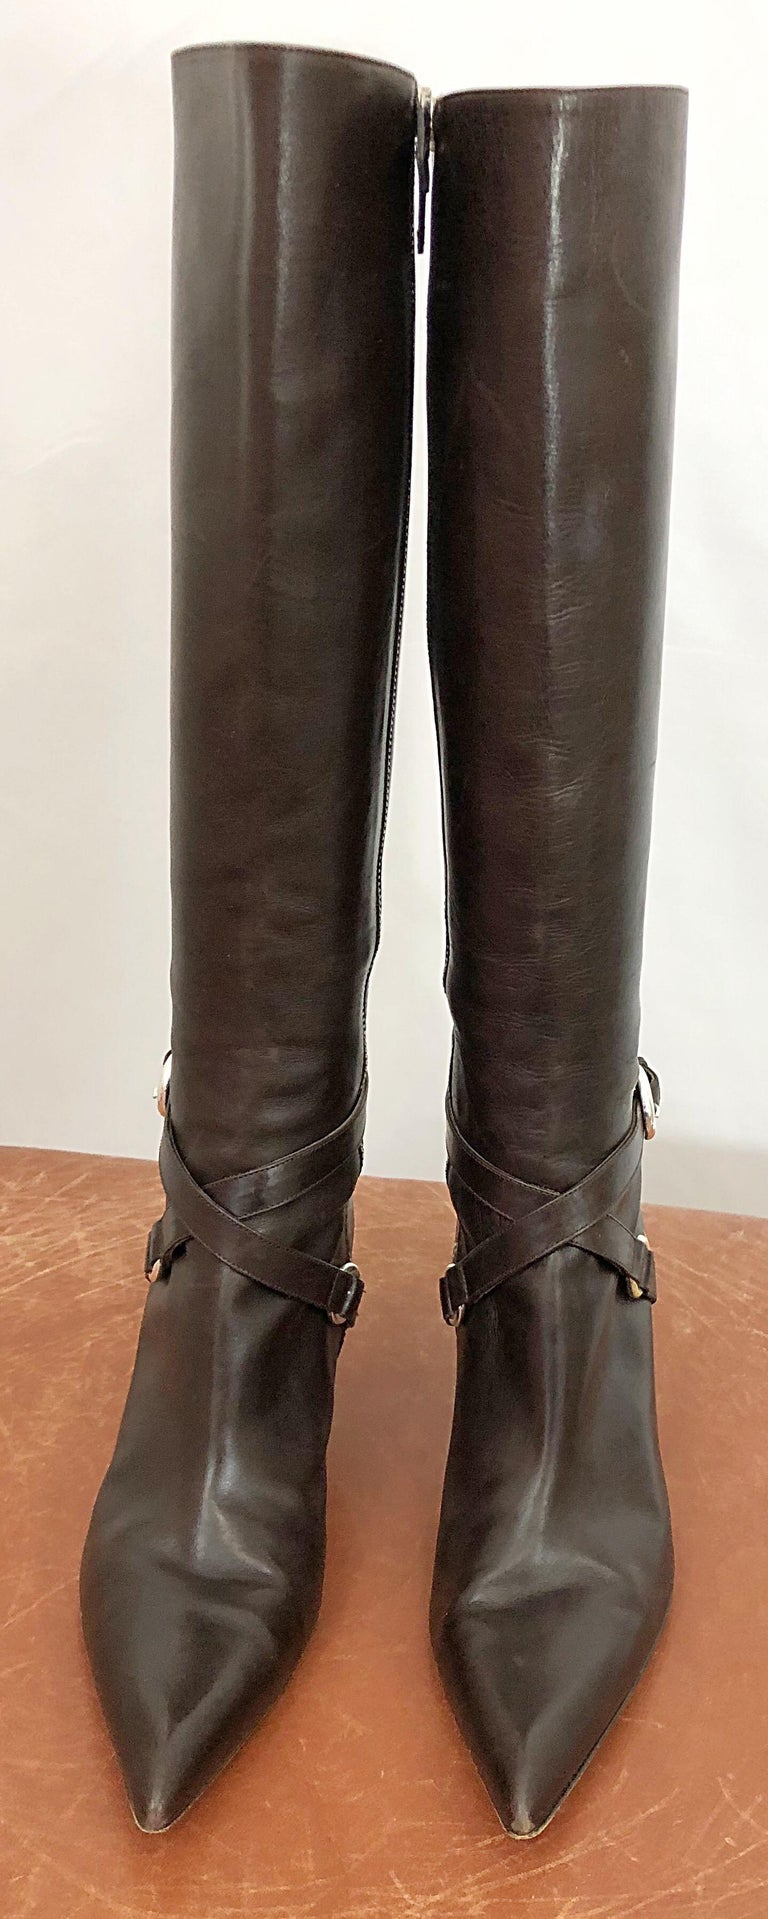 Classic MICHAEL KORS COLLECTION Size 8 chocolate brown leather knee high boots! It is so easy to find a good pair of black boots, but brown leather boots are hard to come by. Sensible high heel, with silver buckle details. Silver zipper up the inner